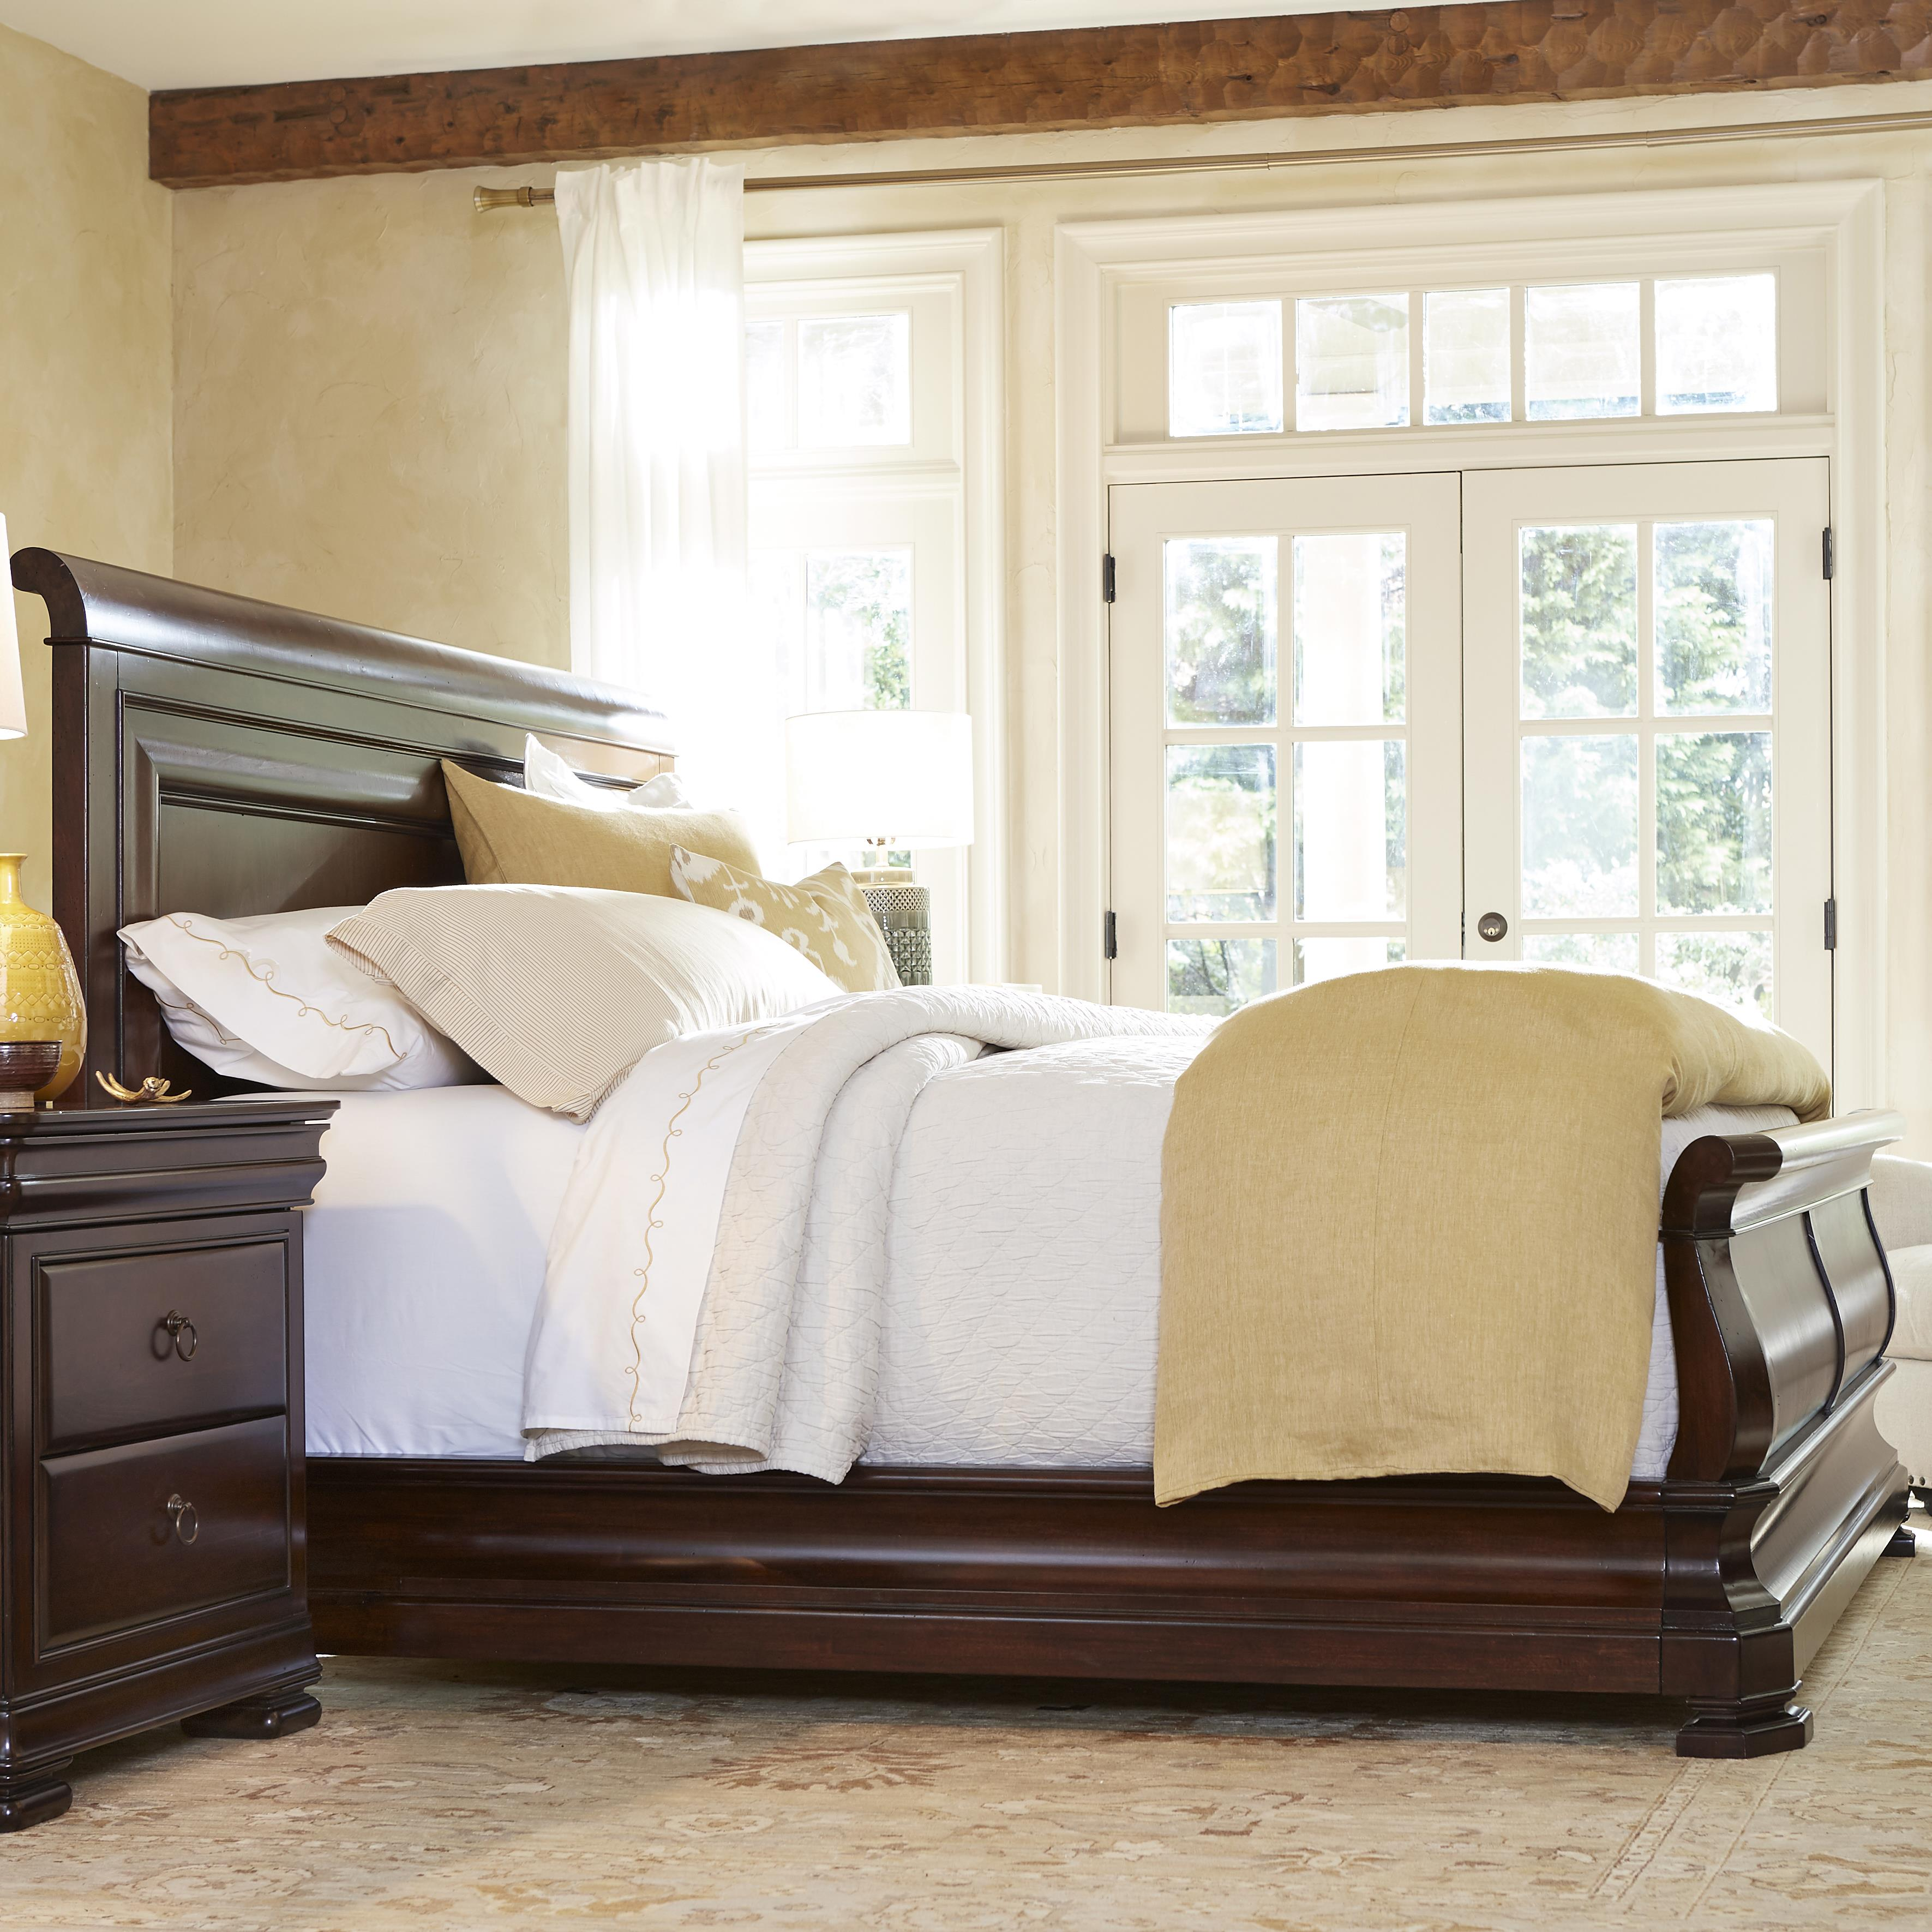 Morris Home Furnishings Newton Falls Newton Falls King Sleigh Bed - Item Number: 58176B